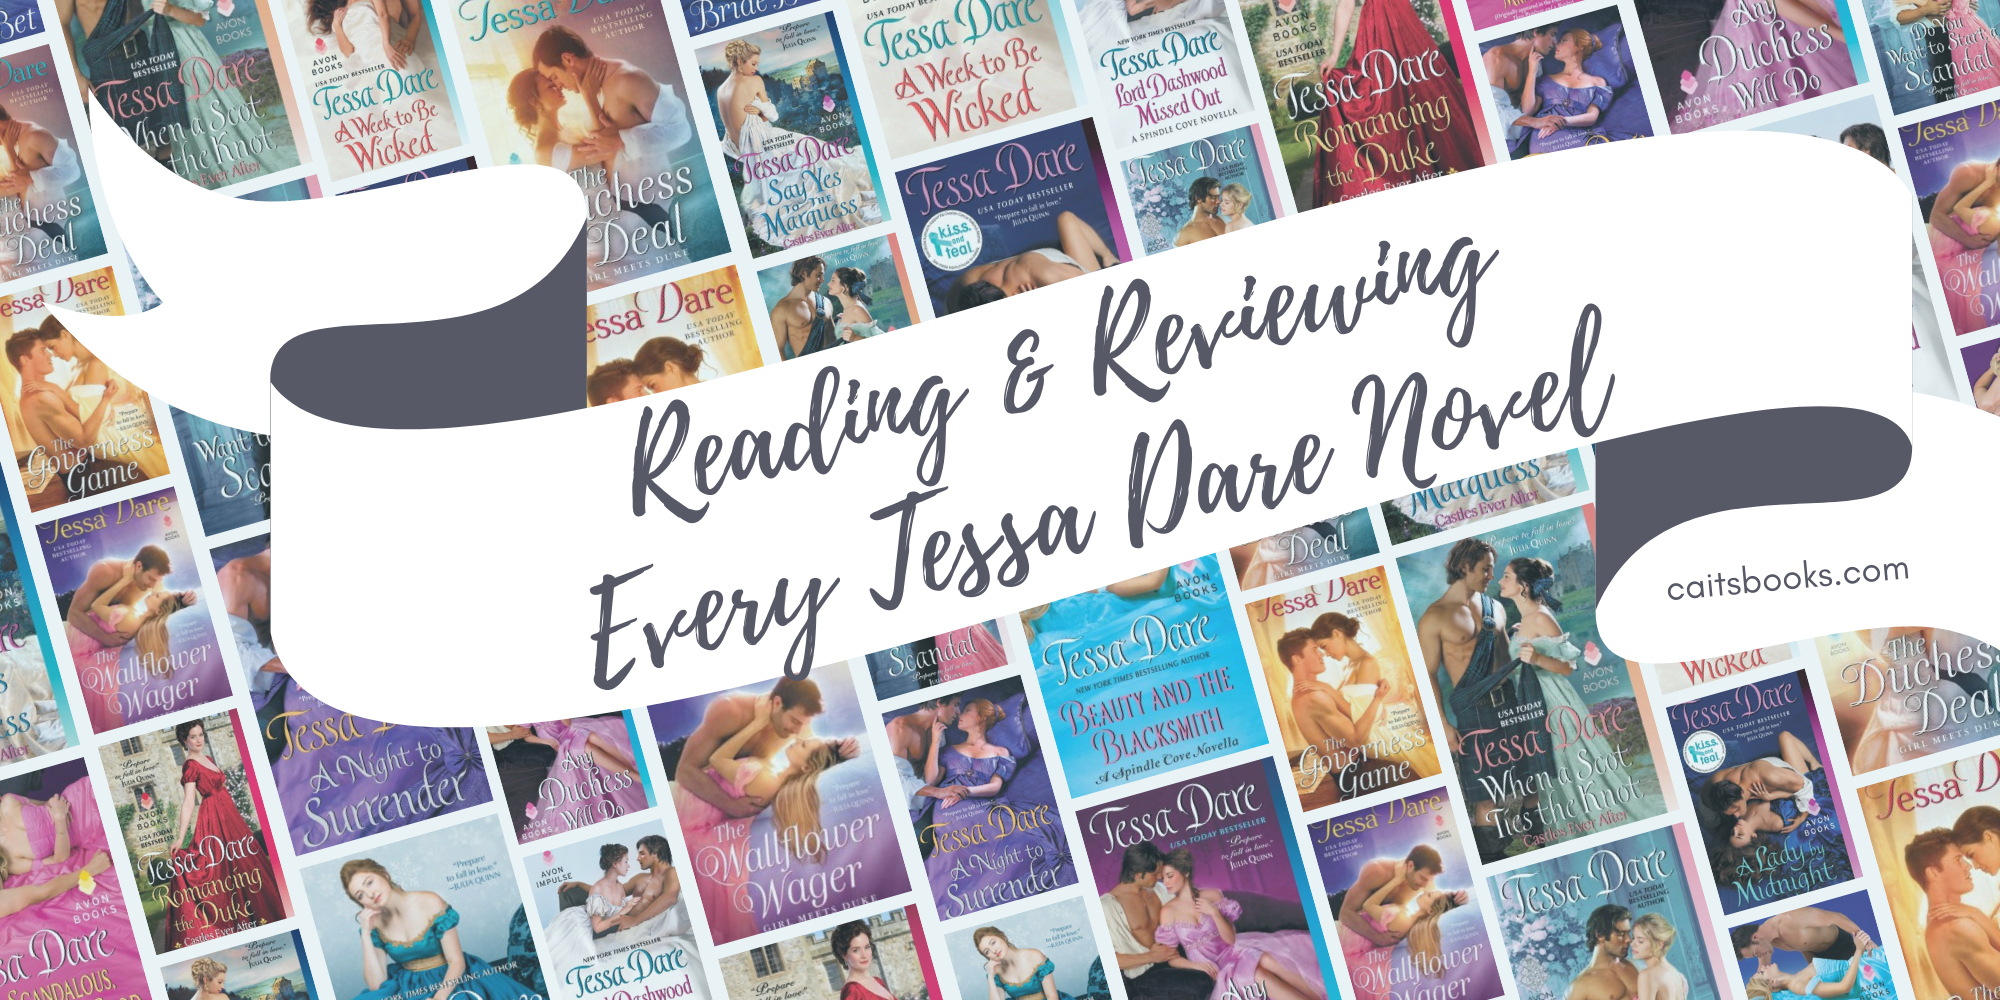 Reading and reviewing every Tessa Dare novel